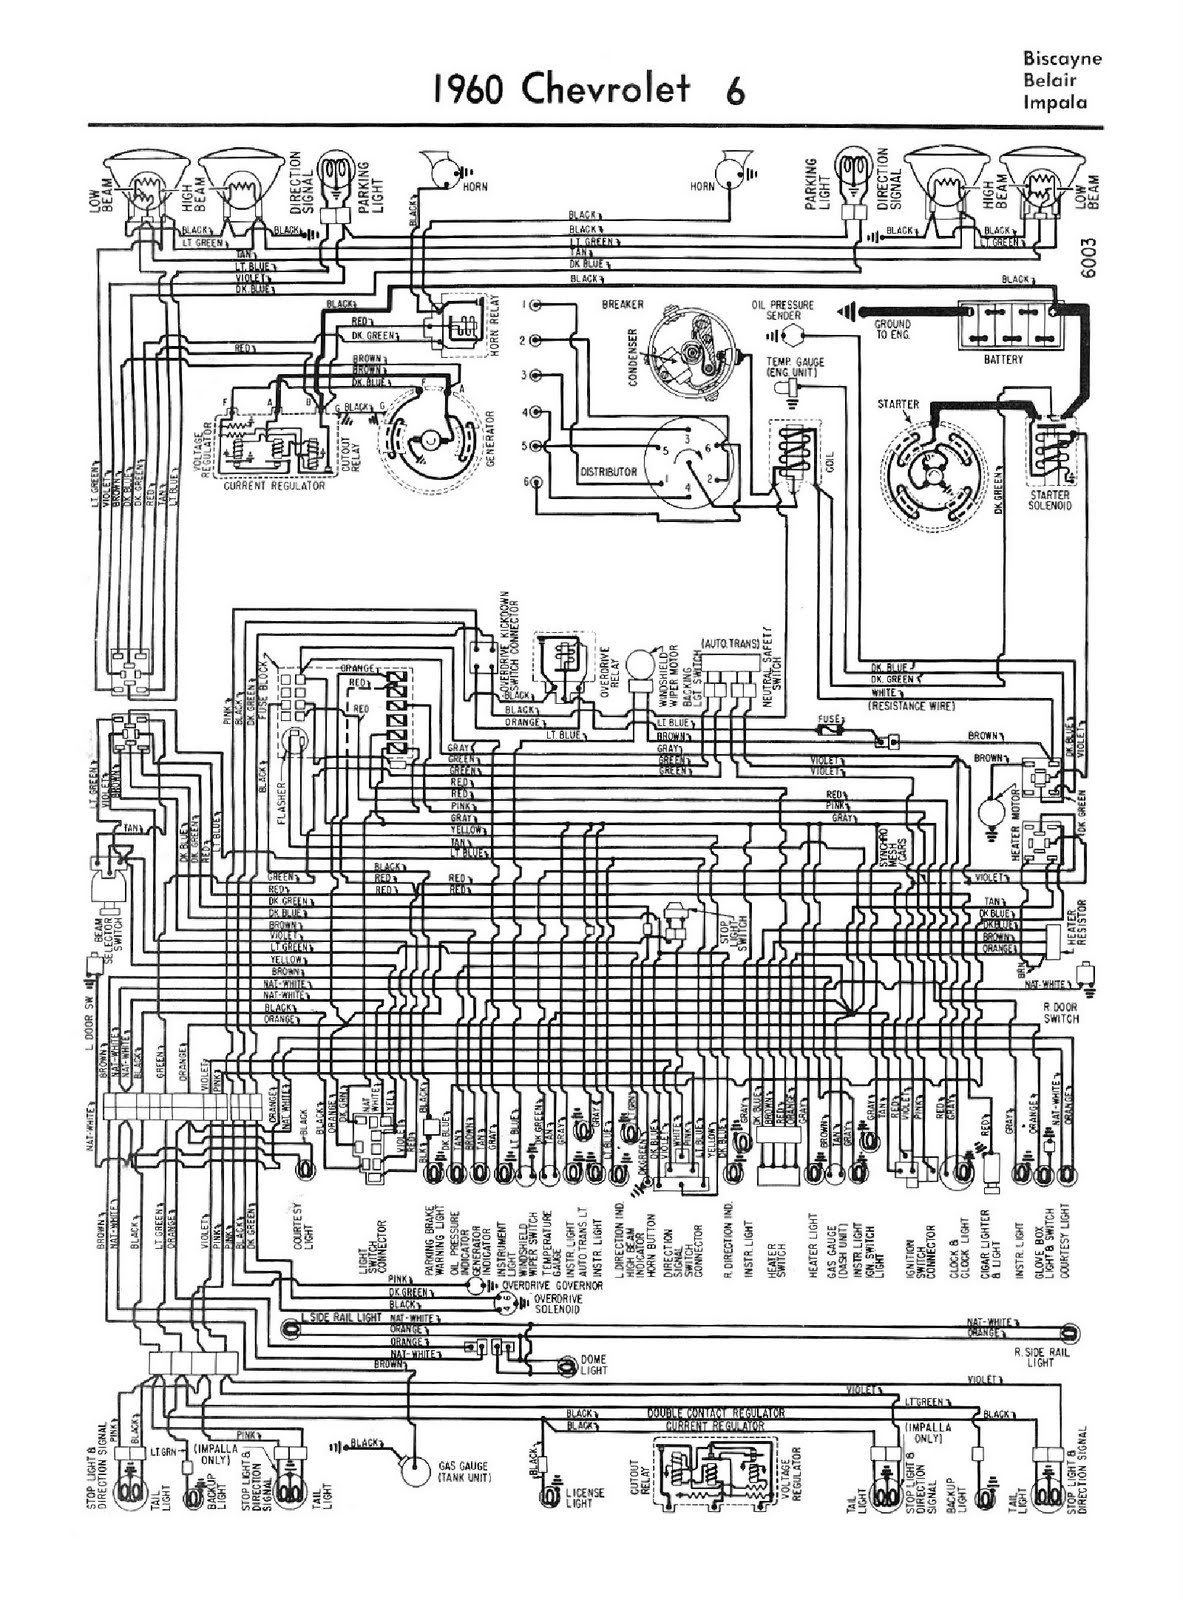 1960_Chevy_V6_Biscayne_Belair_Impala free auto wiring diagram 1960 chevrolet 6 biscayne, belair, or 1960 Chevy Wiring Diagram at fashall.co